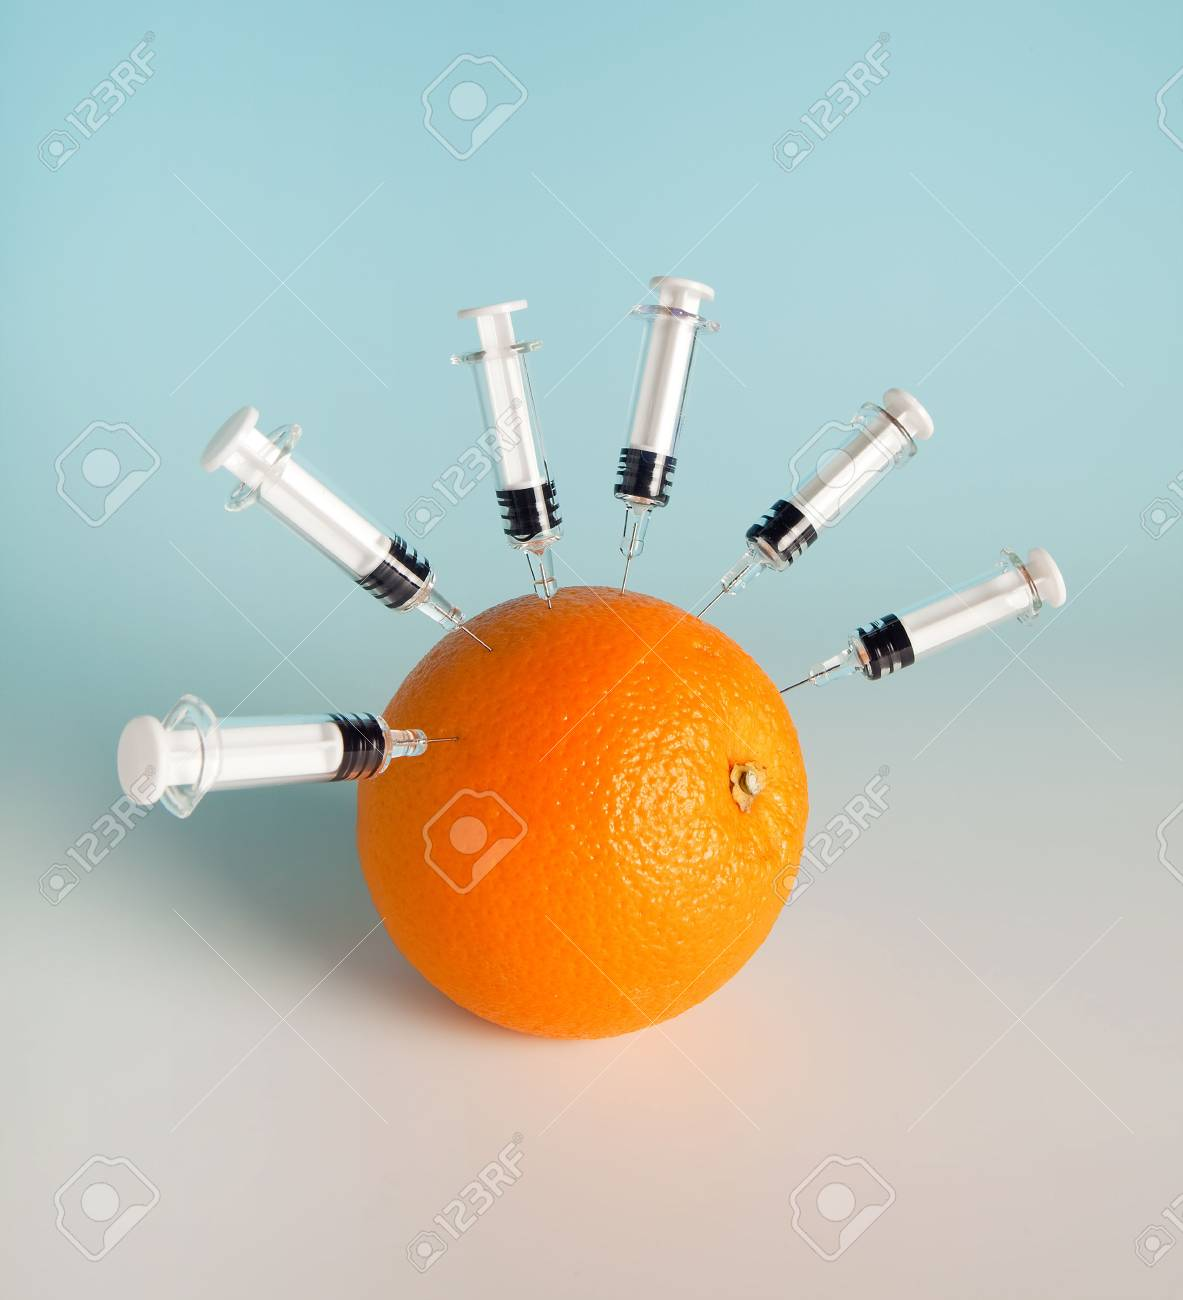 Vitamins and flu vaccines for protection against swine flu Stock Photo - 5428869